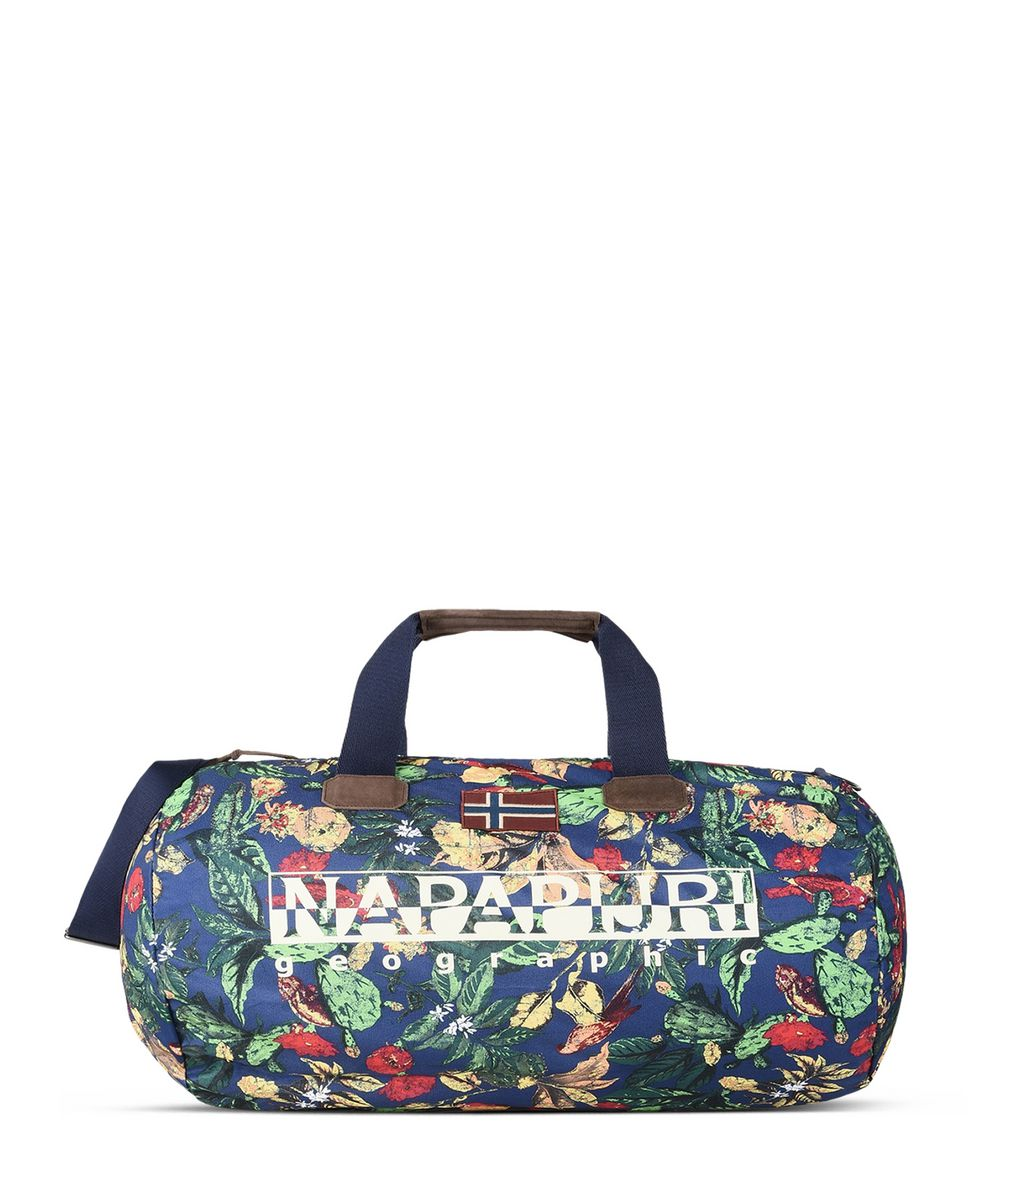 NAPAPIJRI BERING PRINT  TRAVEL BAG,BLUE